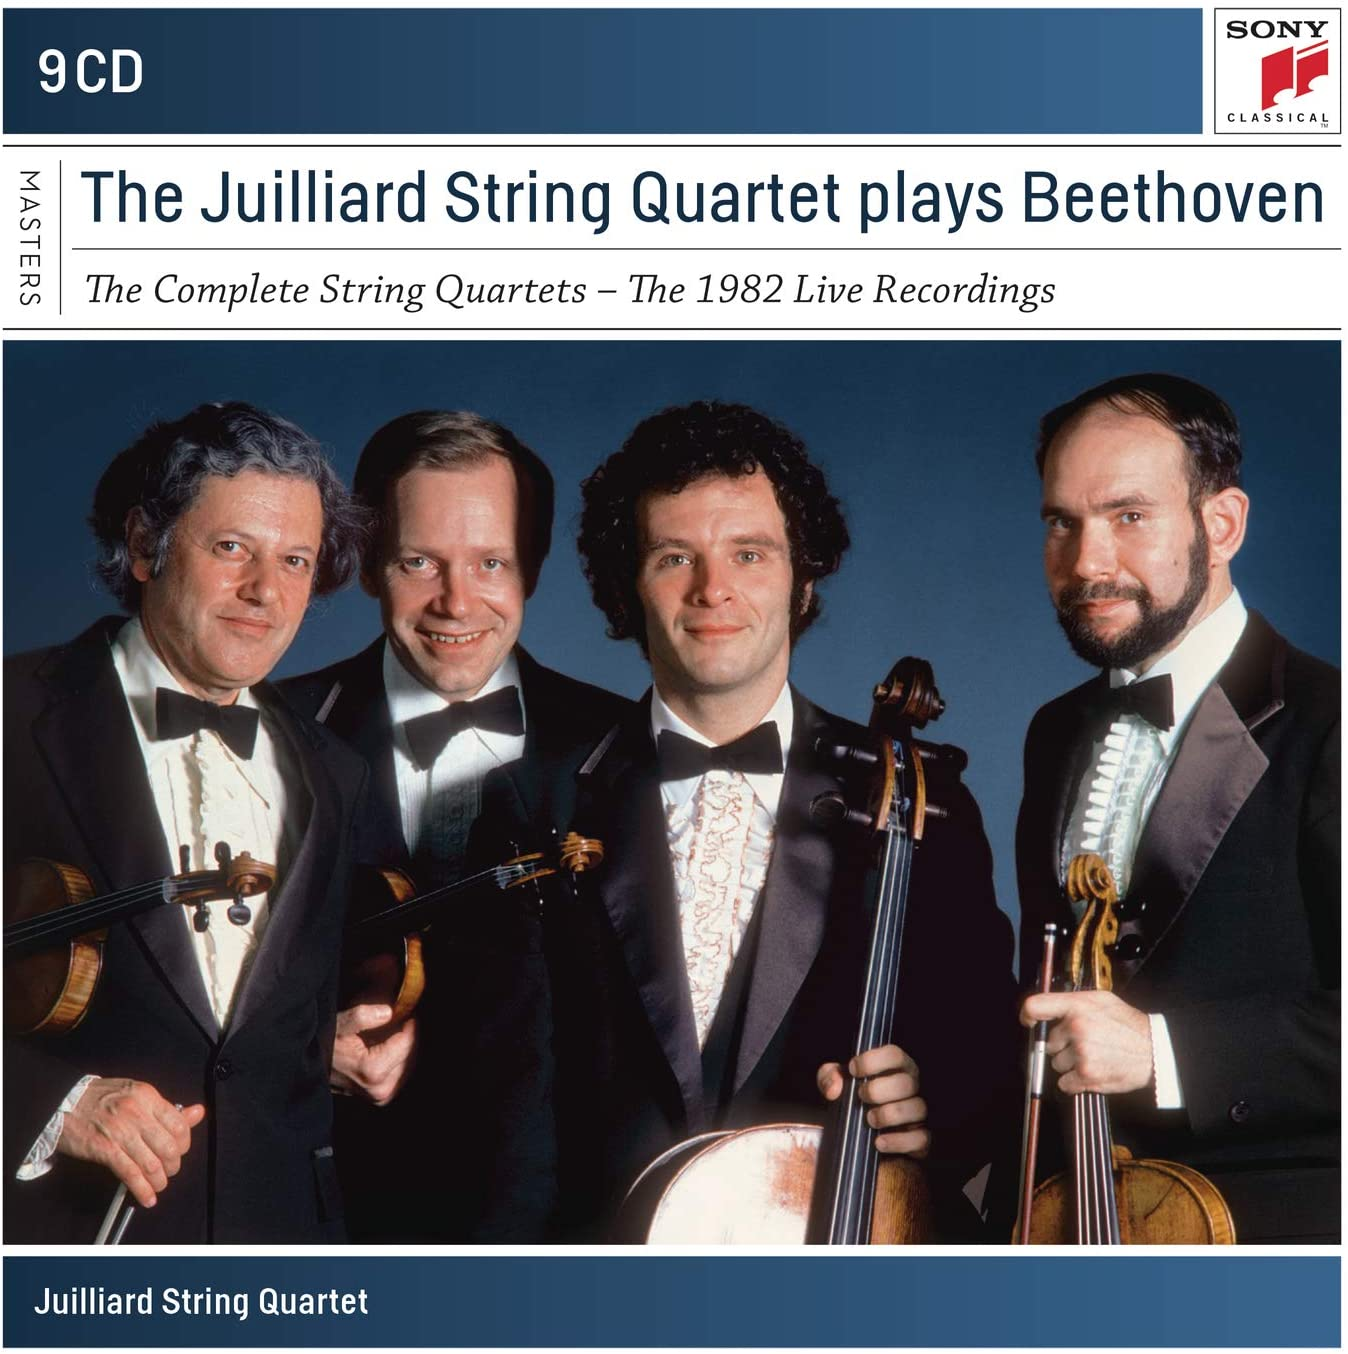 Beethoven: The Complete String Quartets - The 1982 Live Recordings